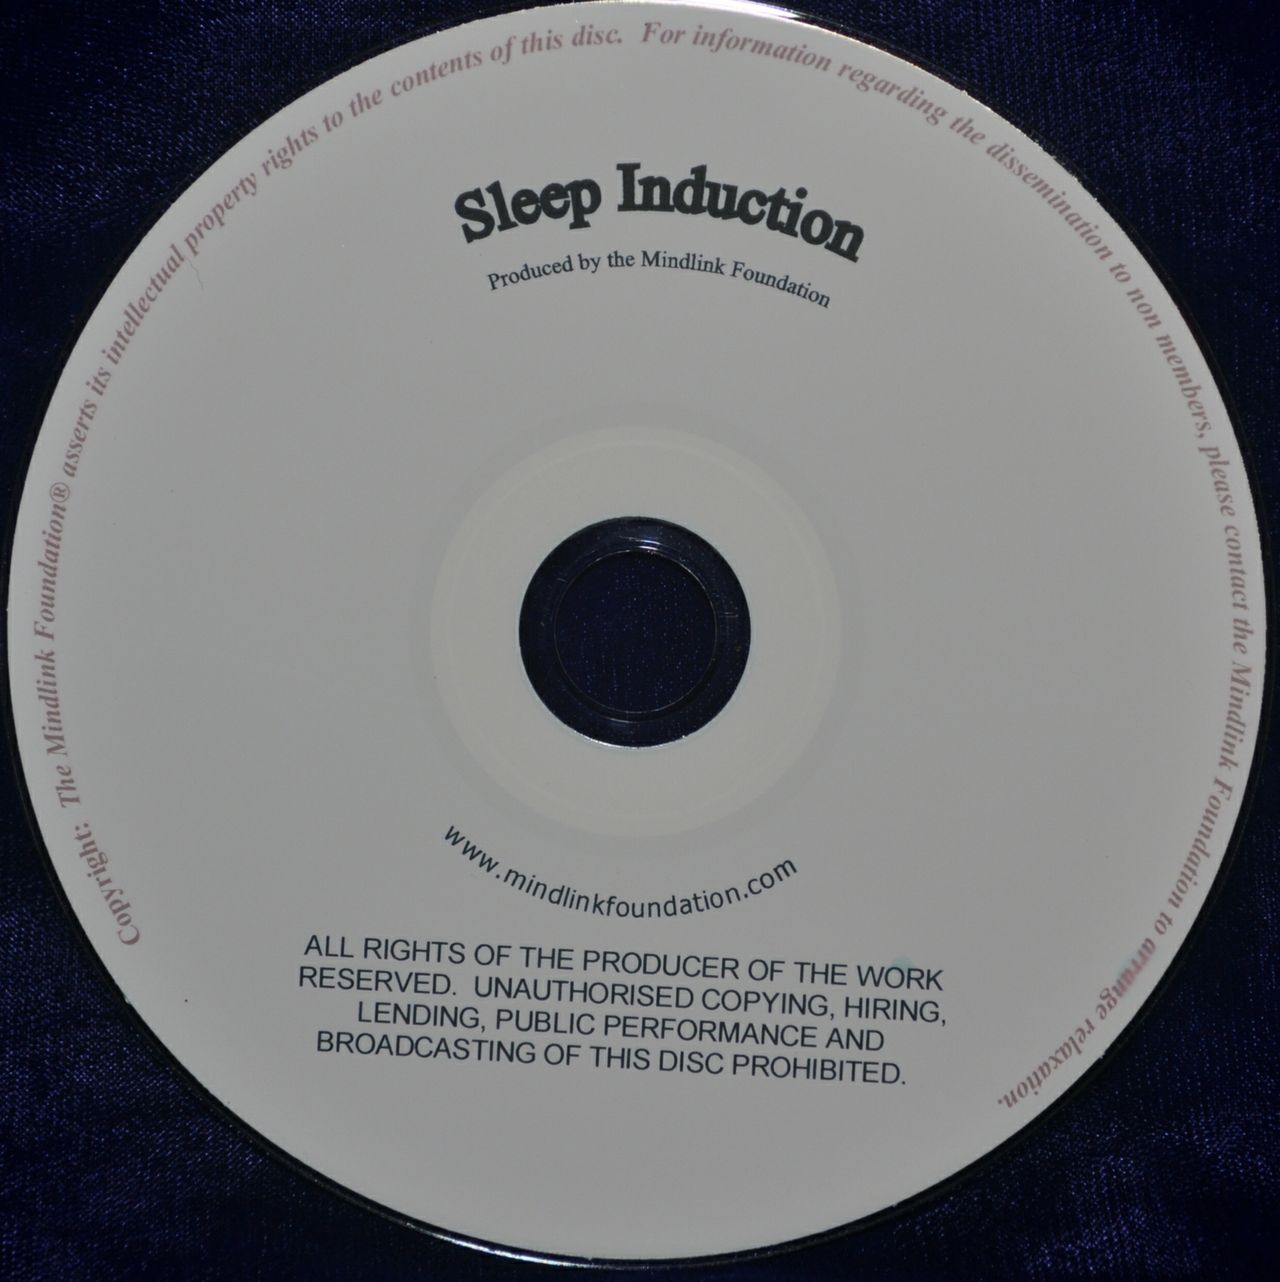 Binaural MP3 Sleep Induction from an Agitated State